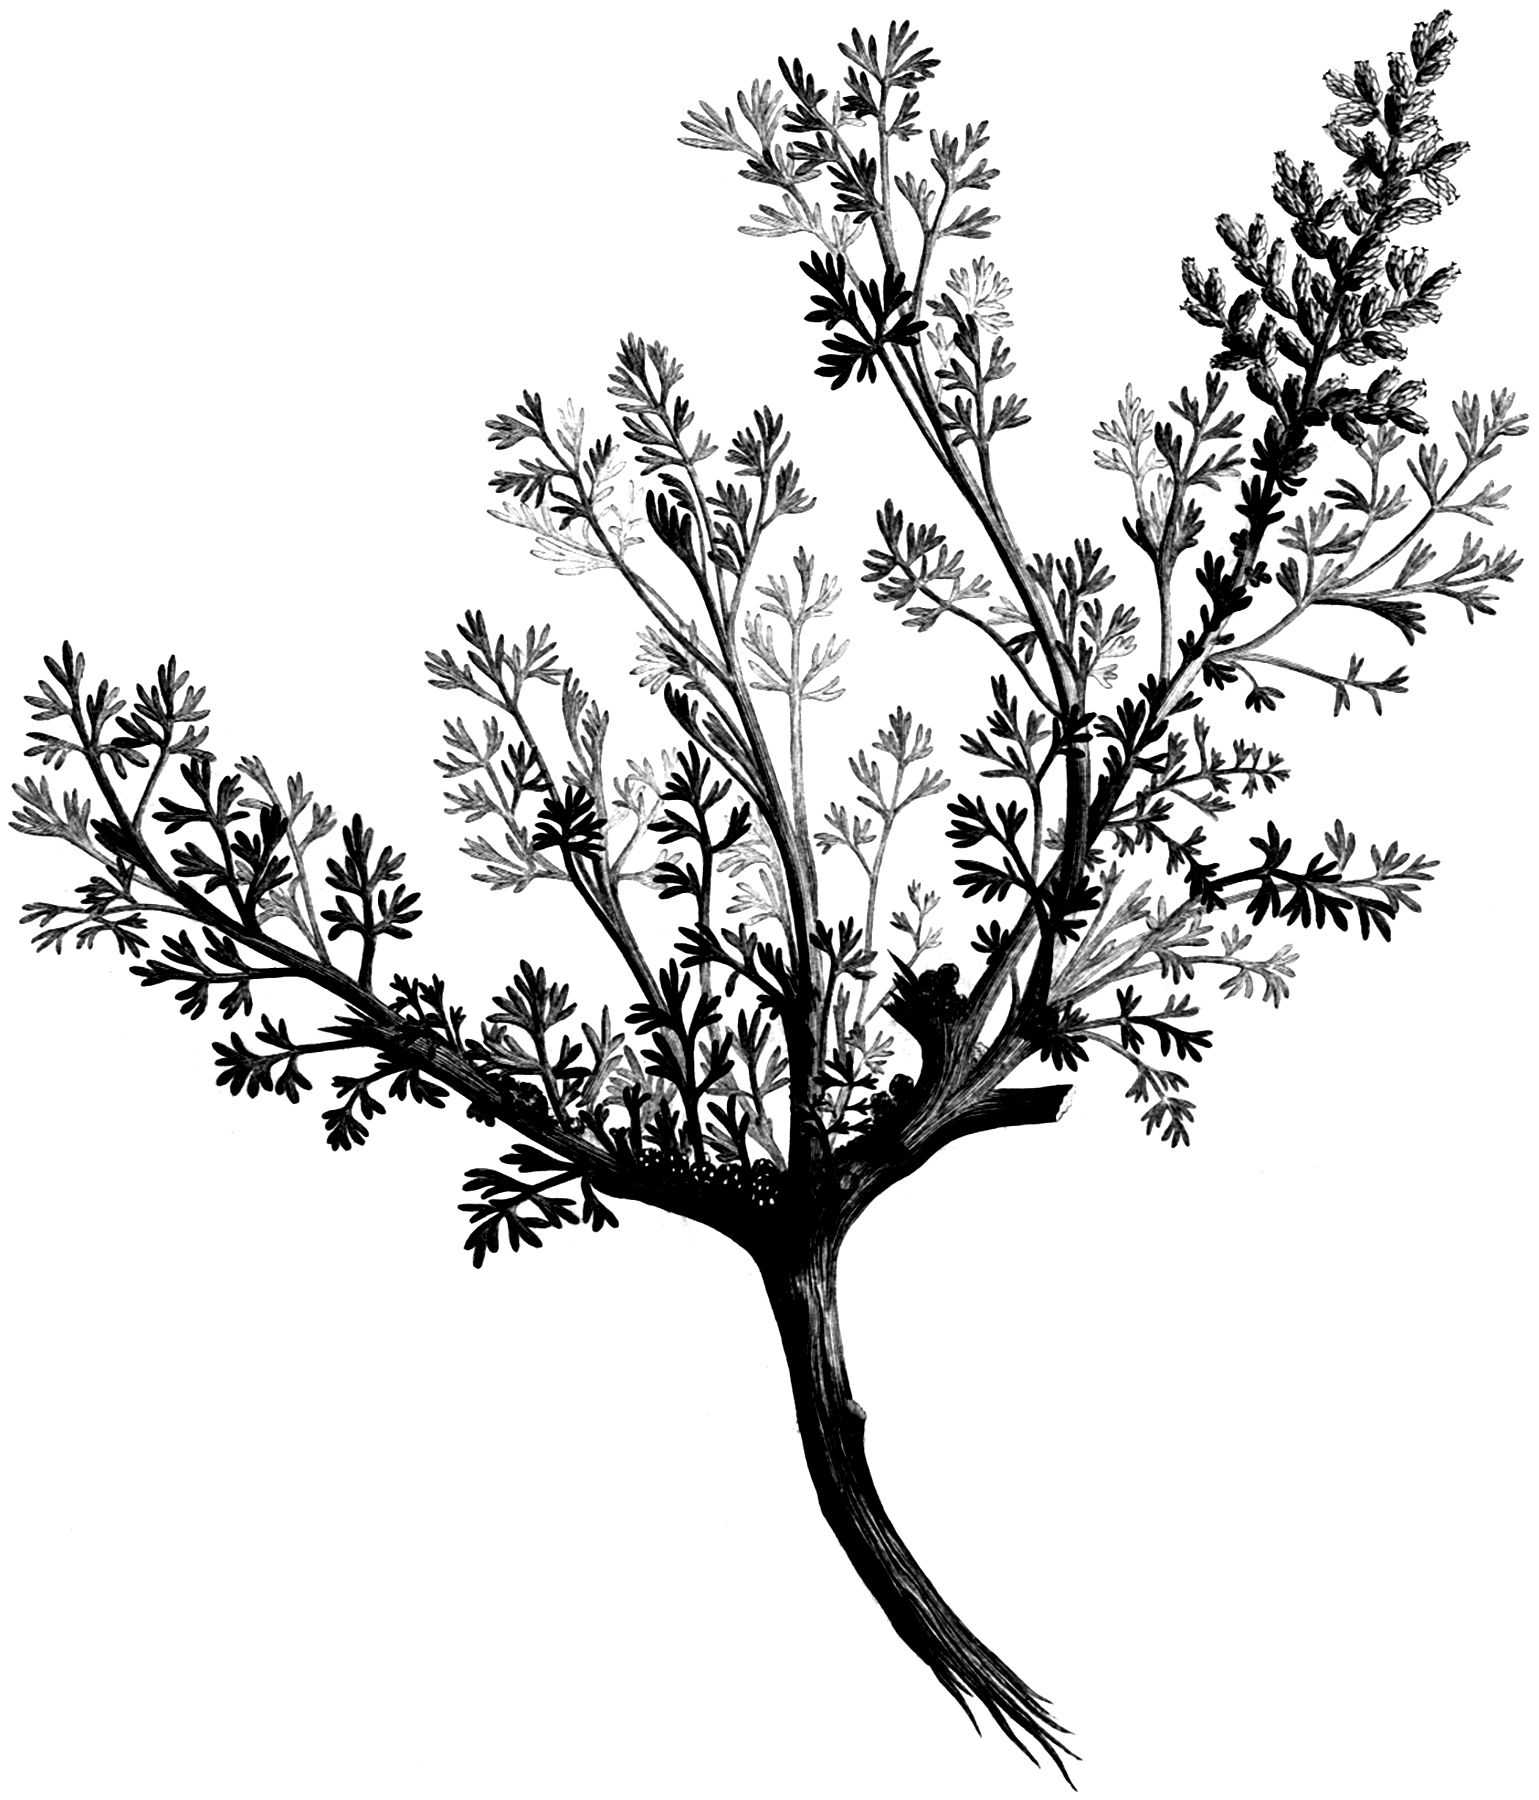 Vintage Black and White Leafy Branch Graphic!.